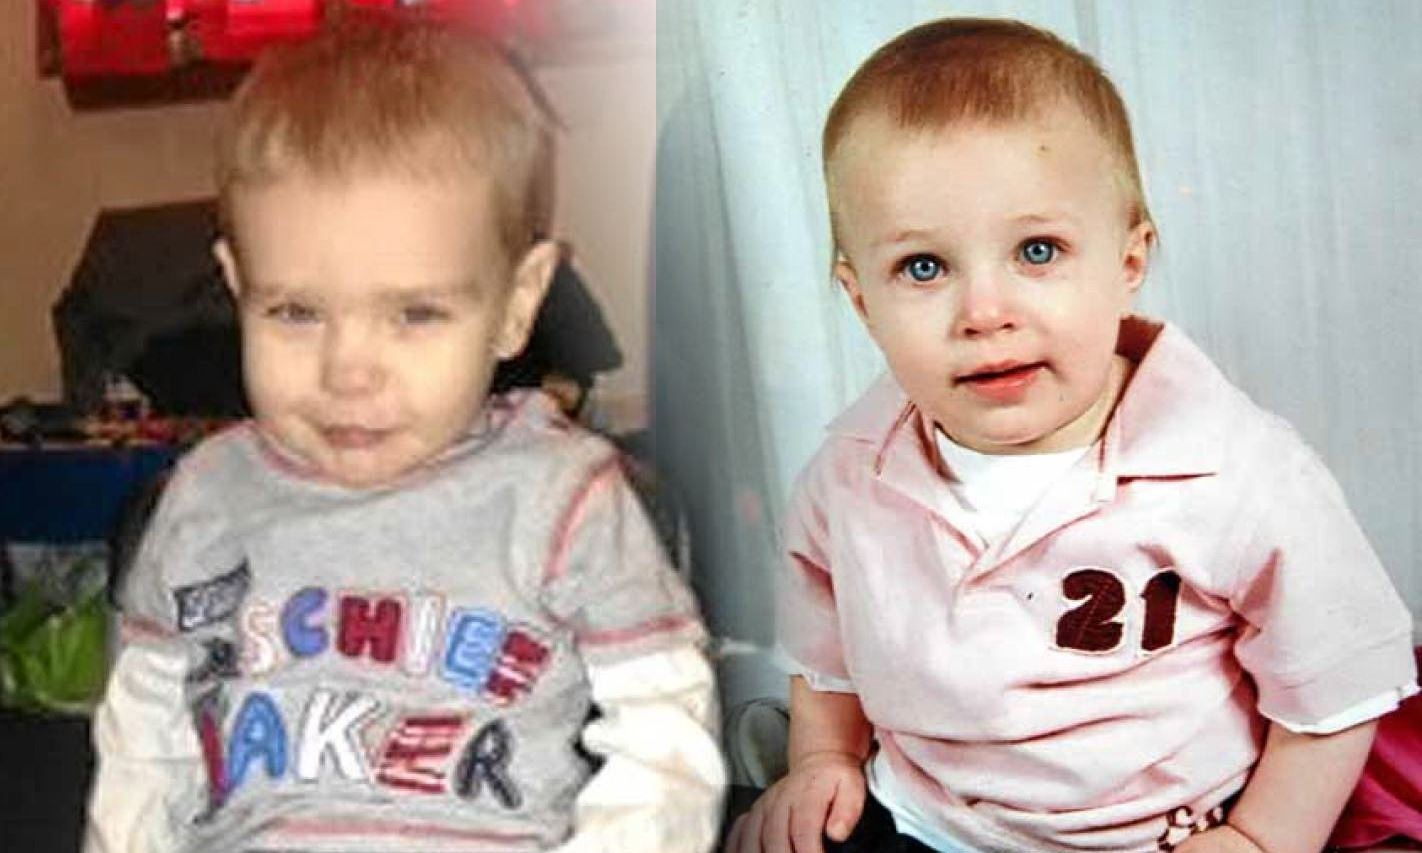 Fife child Liam Fee (left) and Dundee toddler Brandon Muir, who was killed by his mother's boyfriend in 2008.